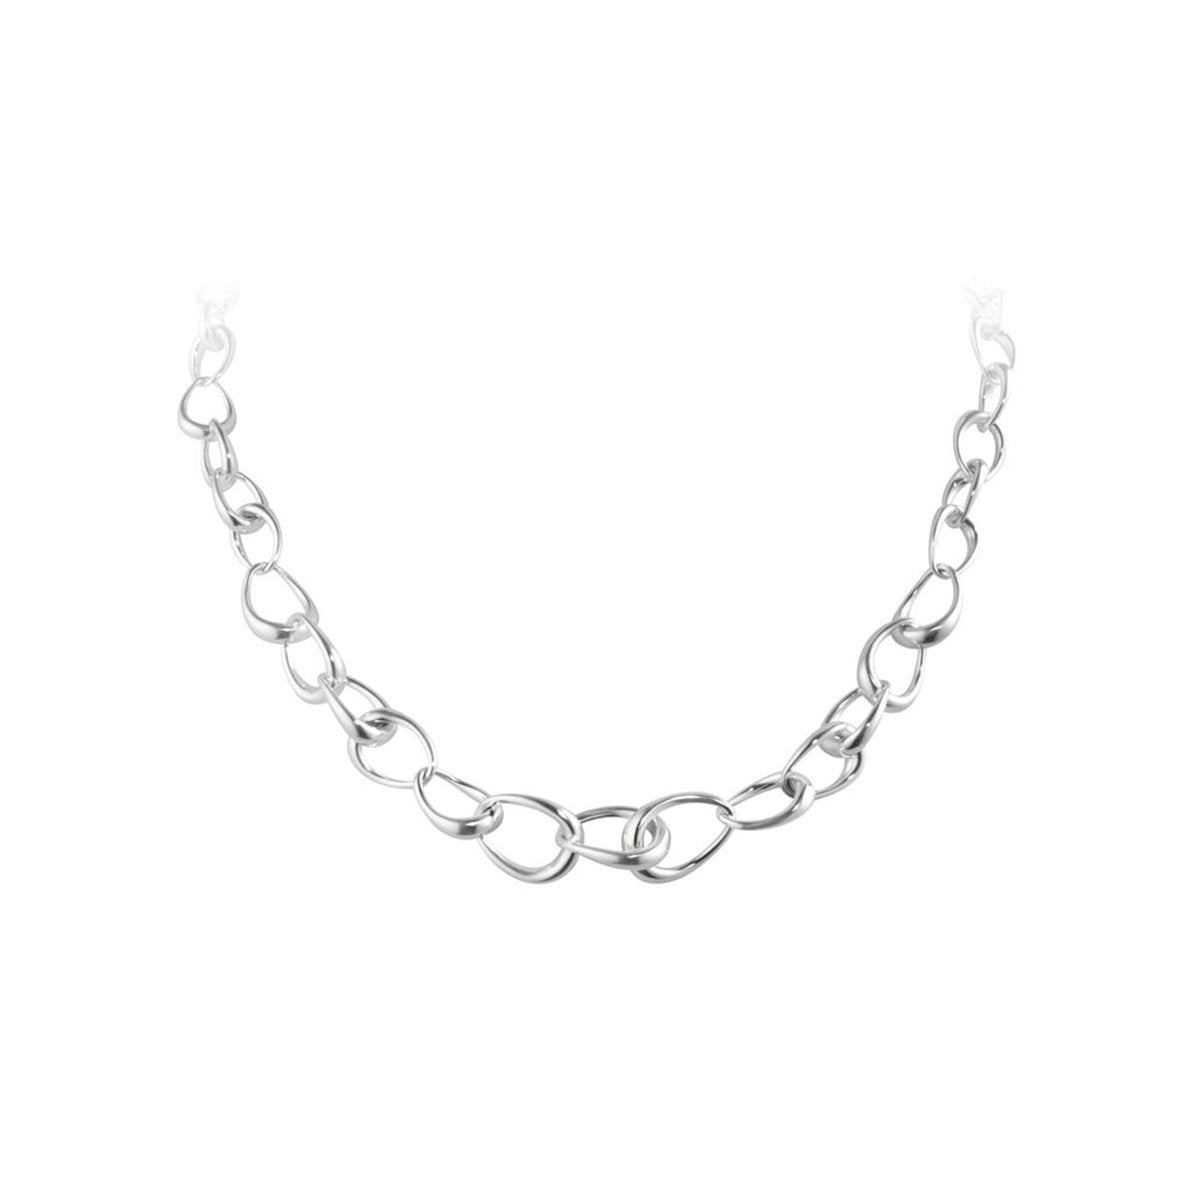 Georg Jensen Offspring Necklet in Sterling Silver - Hamilton & Inches